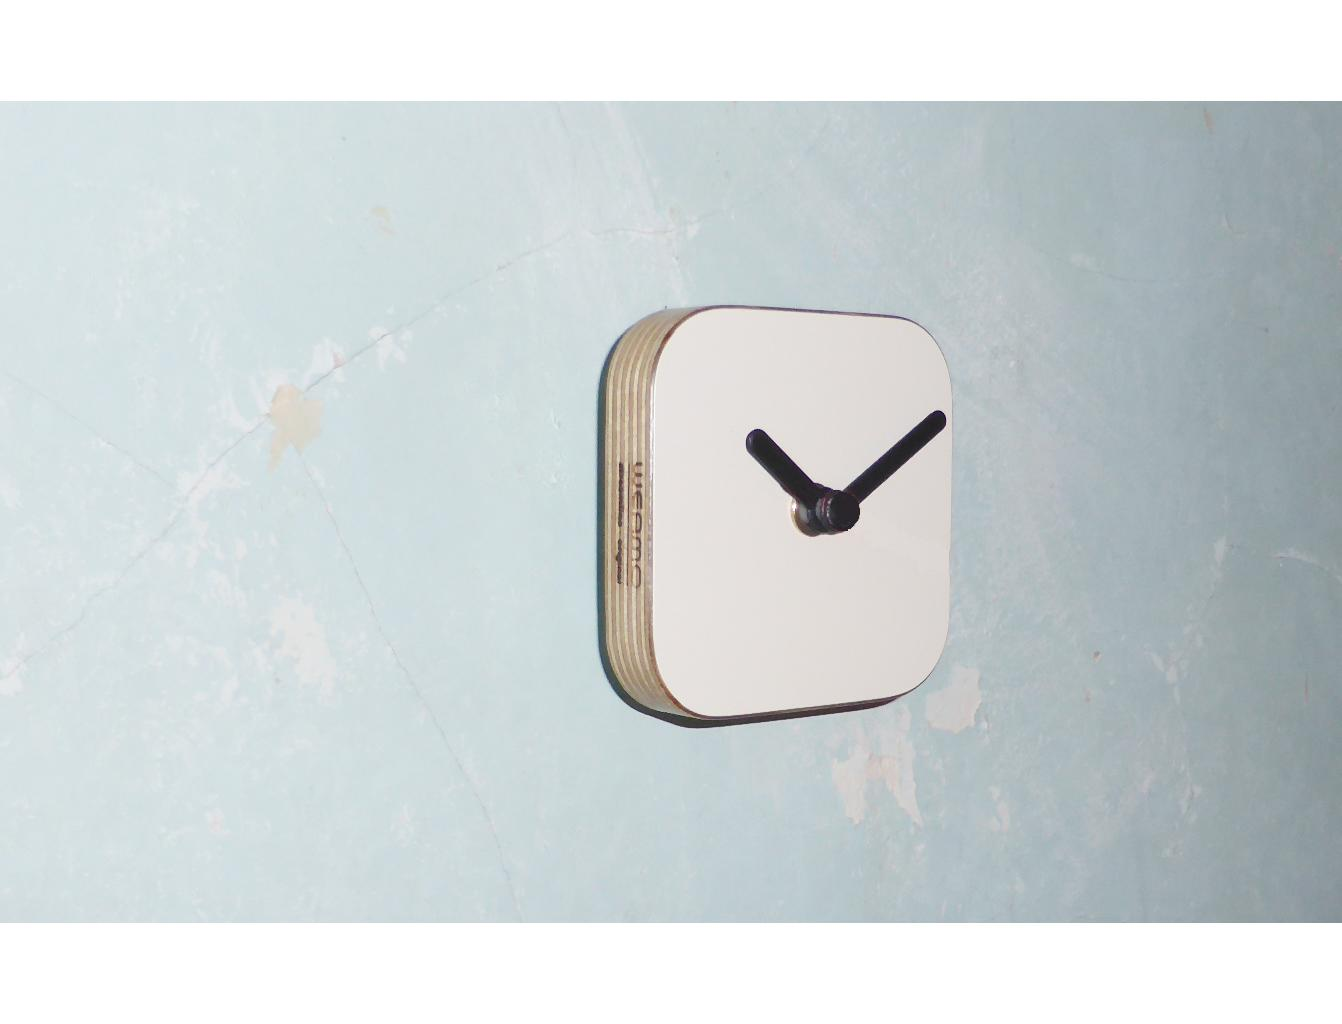 WEAMO Small Wall Clock - Clotted Cream White